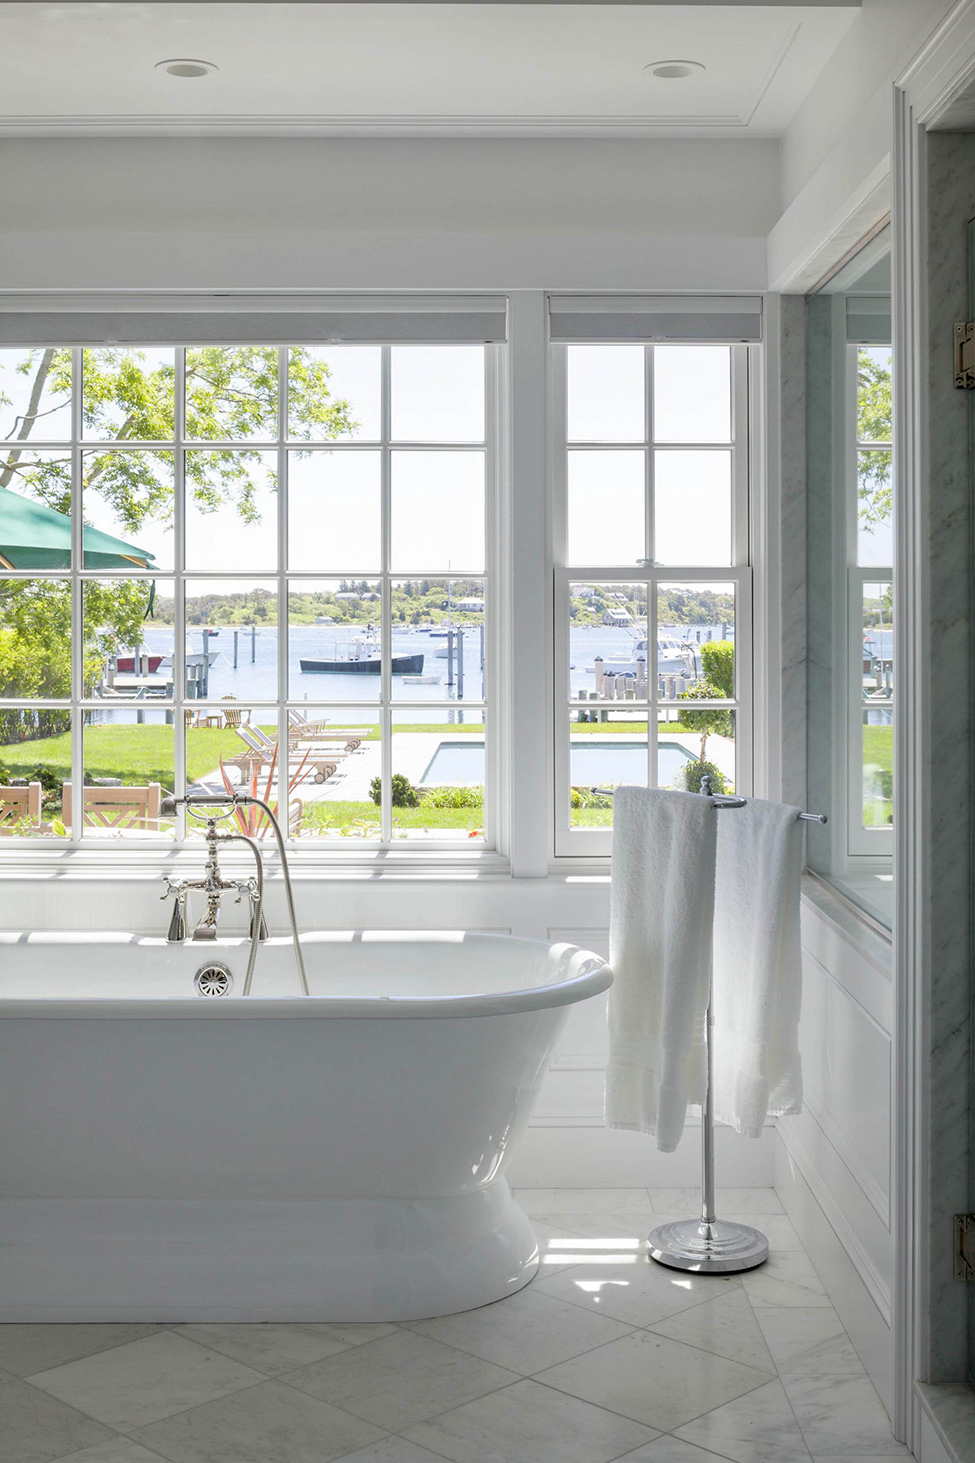 House Tour-A Classic Beauty on Pituresque Cape Cod 20.jpg